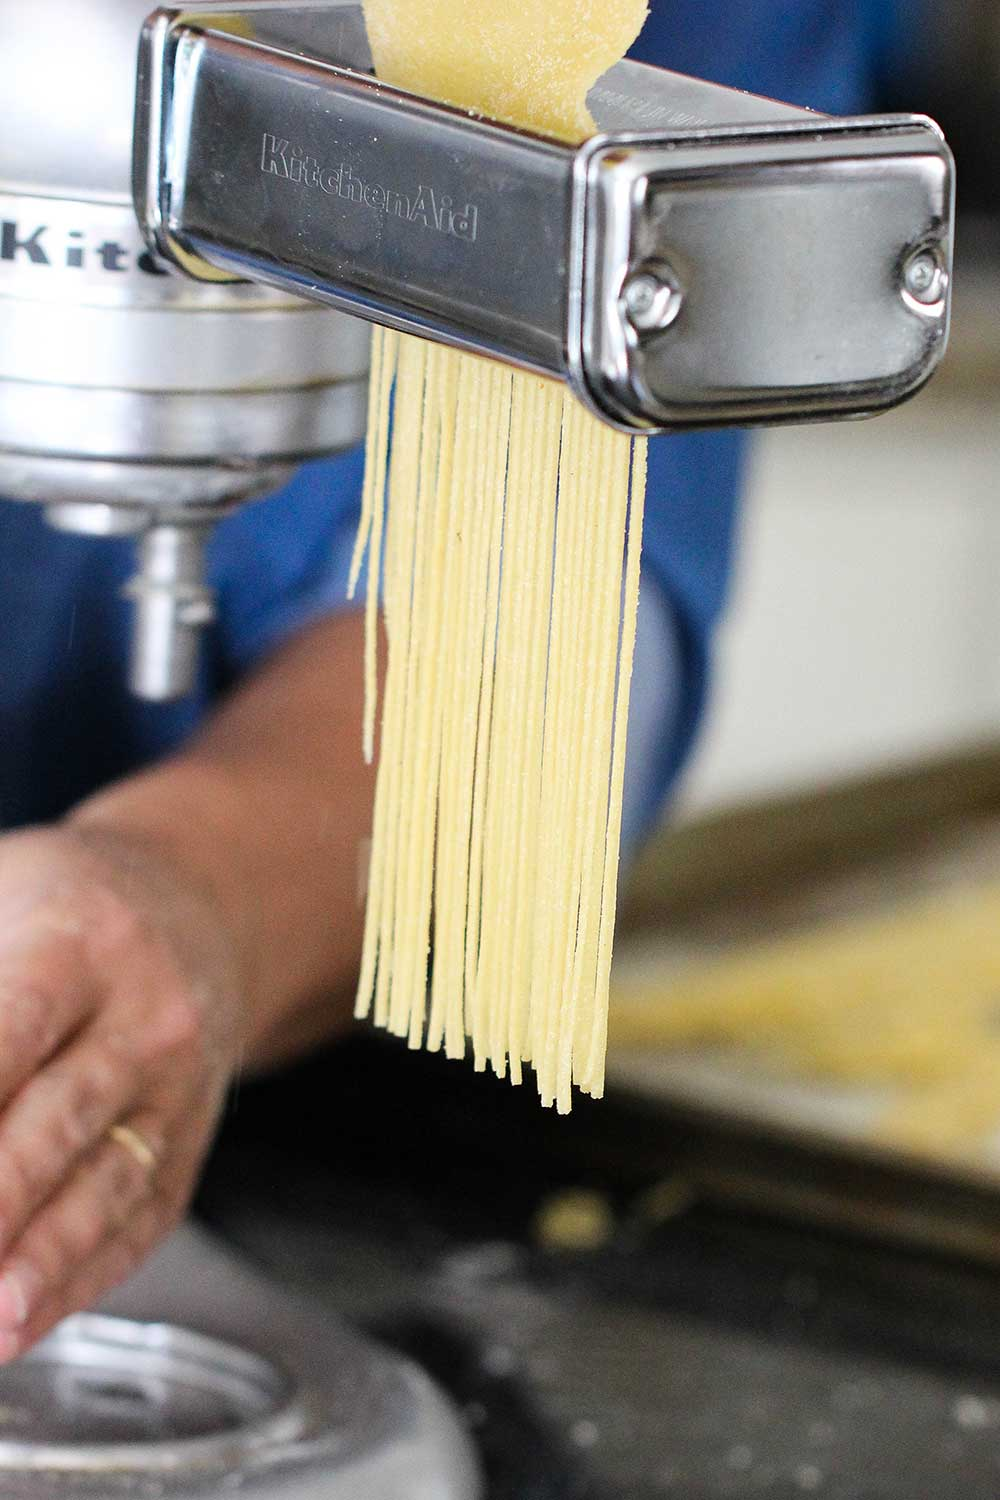 Pasta dough being cut by a pasta attachment on the side of a stand mixer.